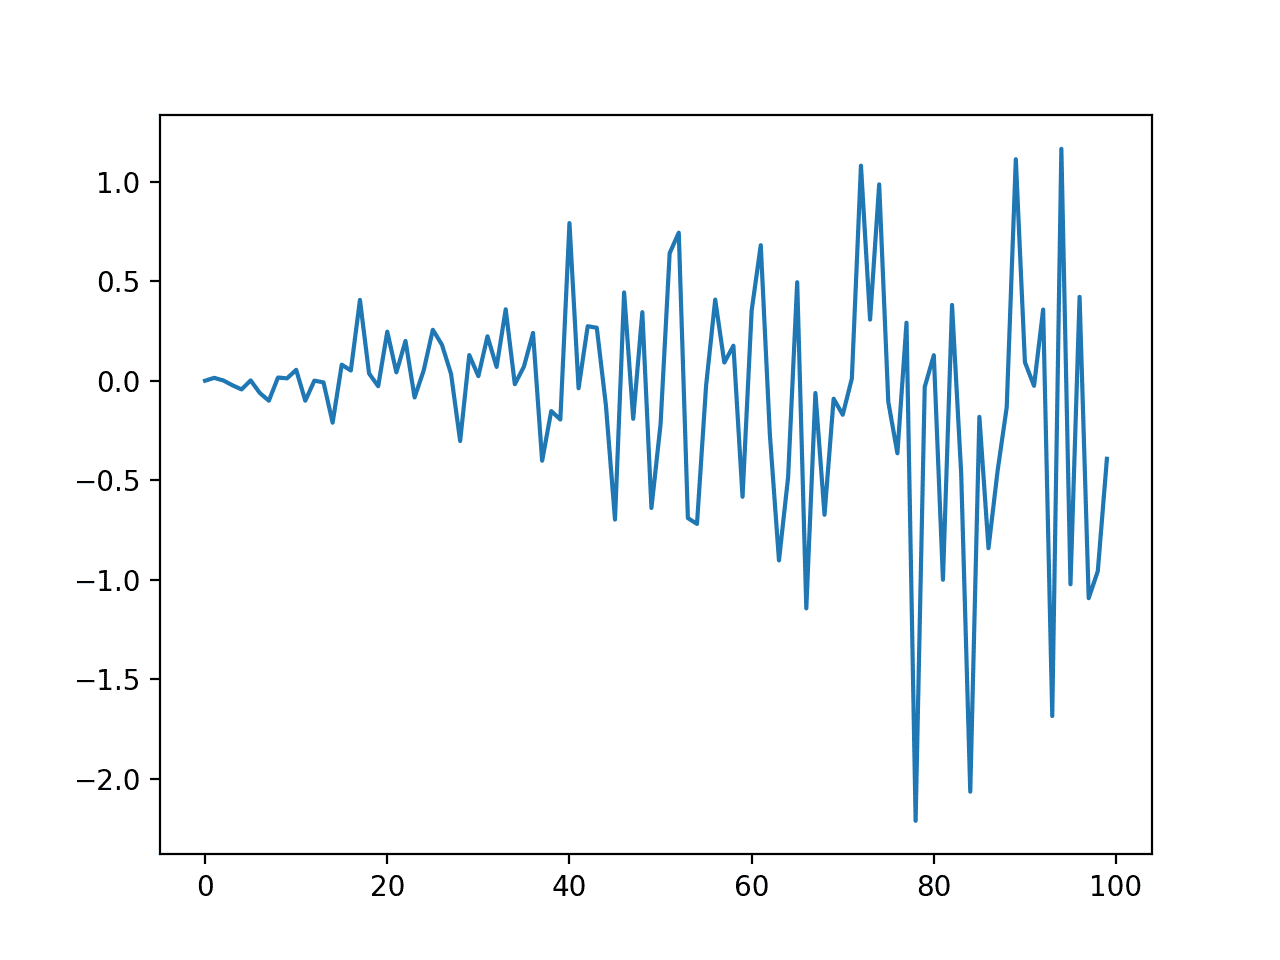 Line Plot of Dataset with Increasing Variance